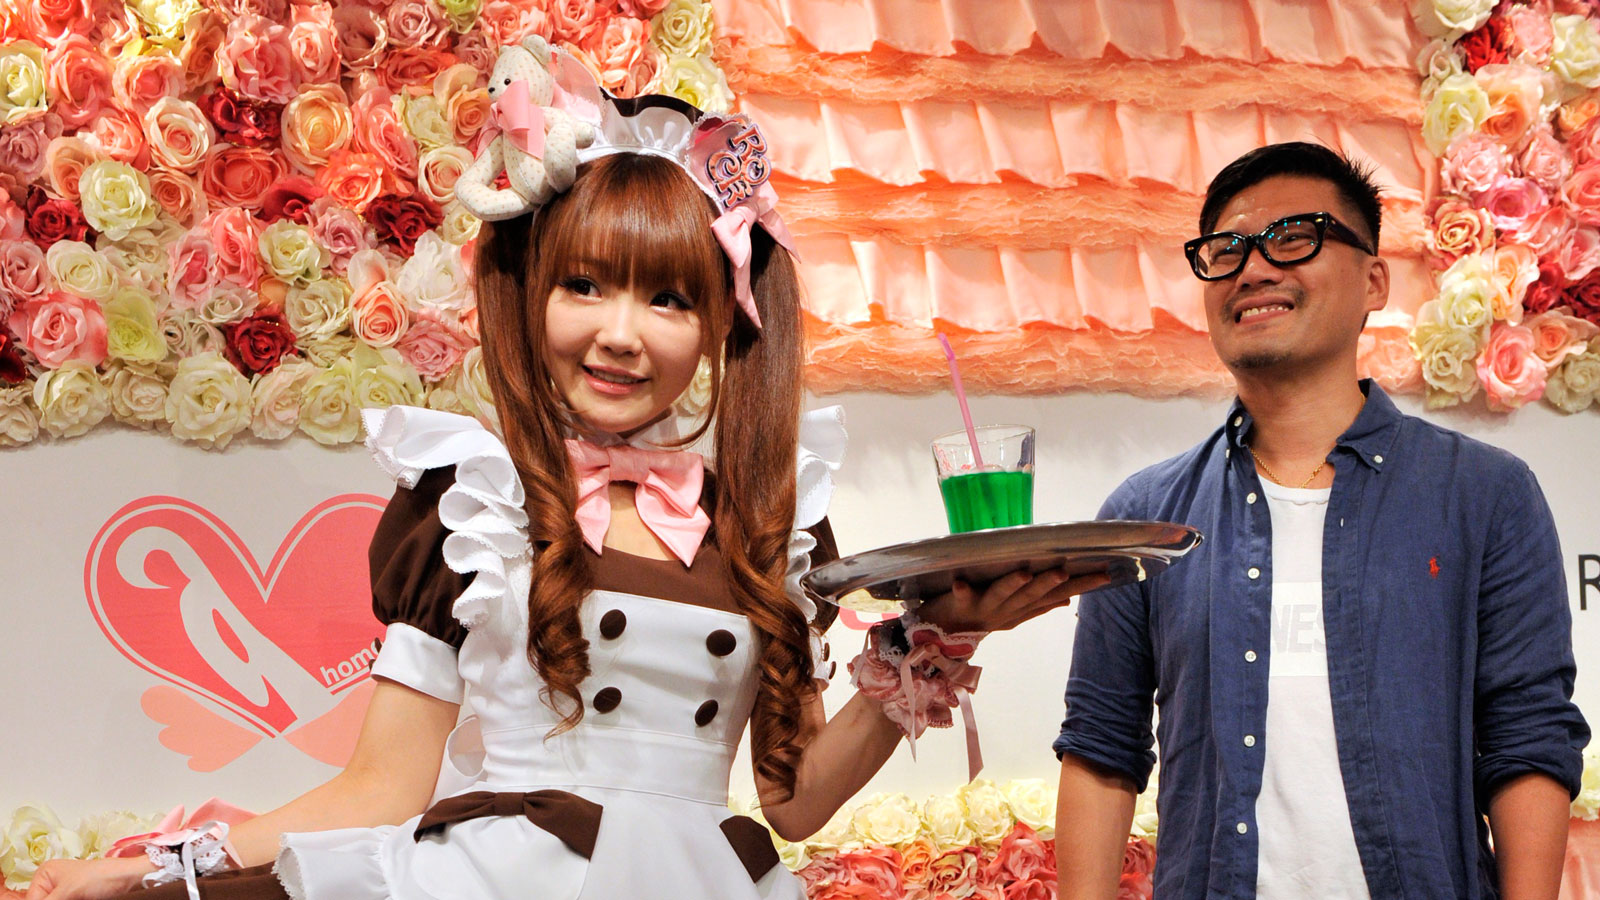 Tokyo S Maid Cafes Your Guide To The Best Service Cnn Travel